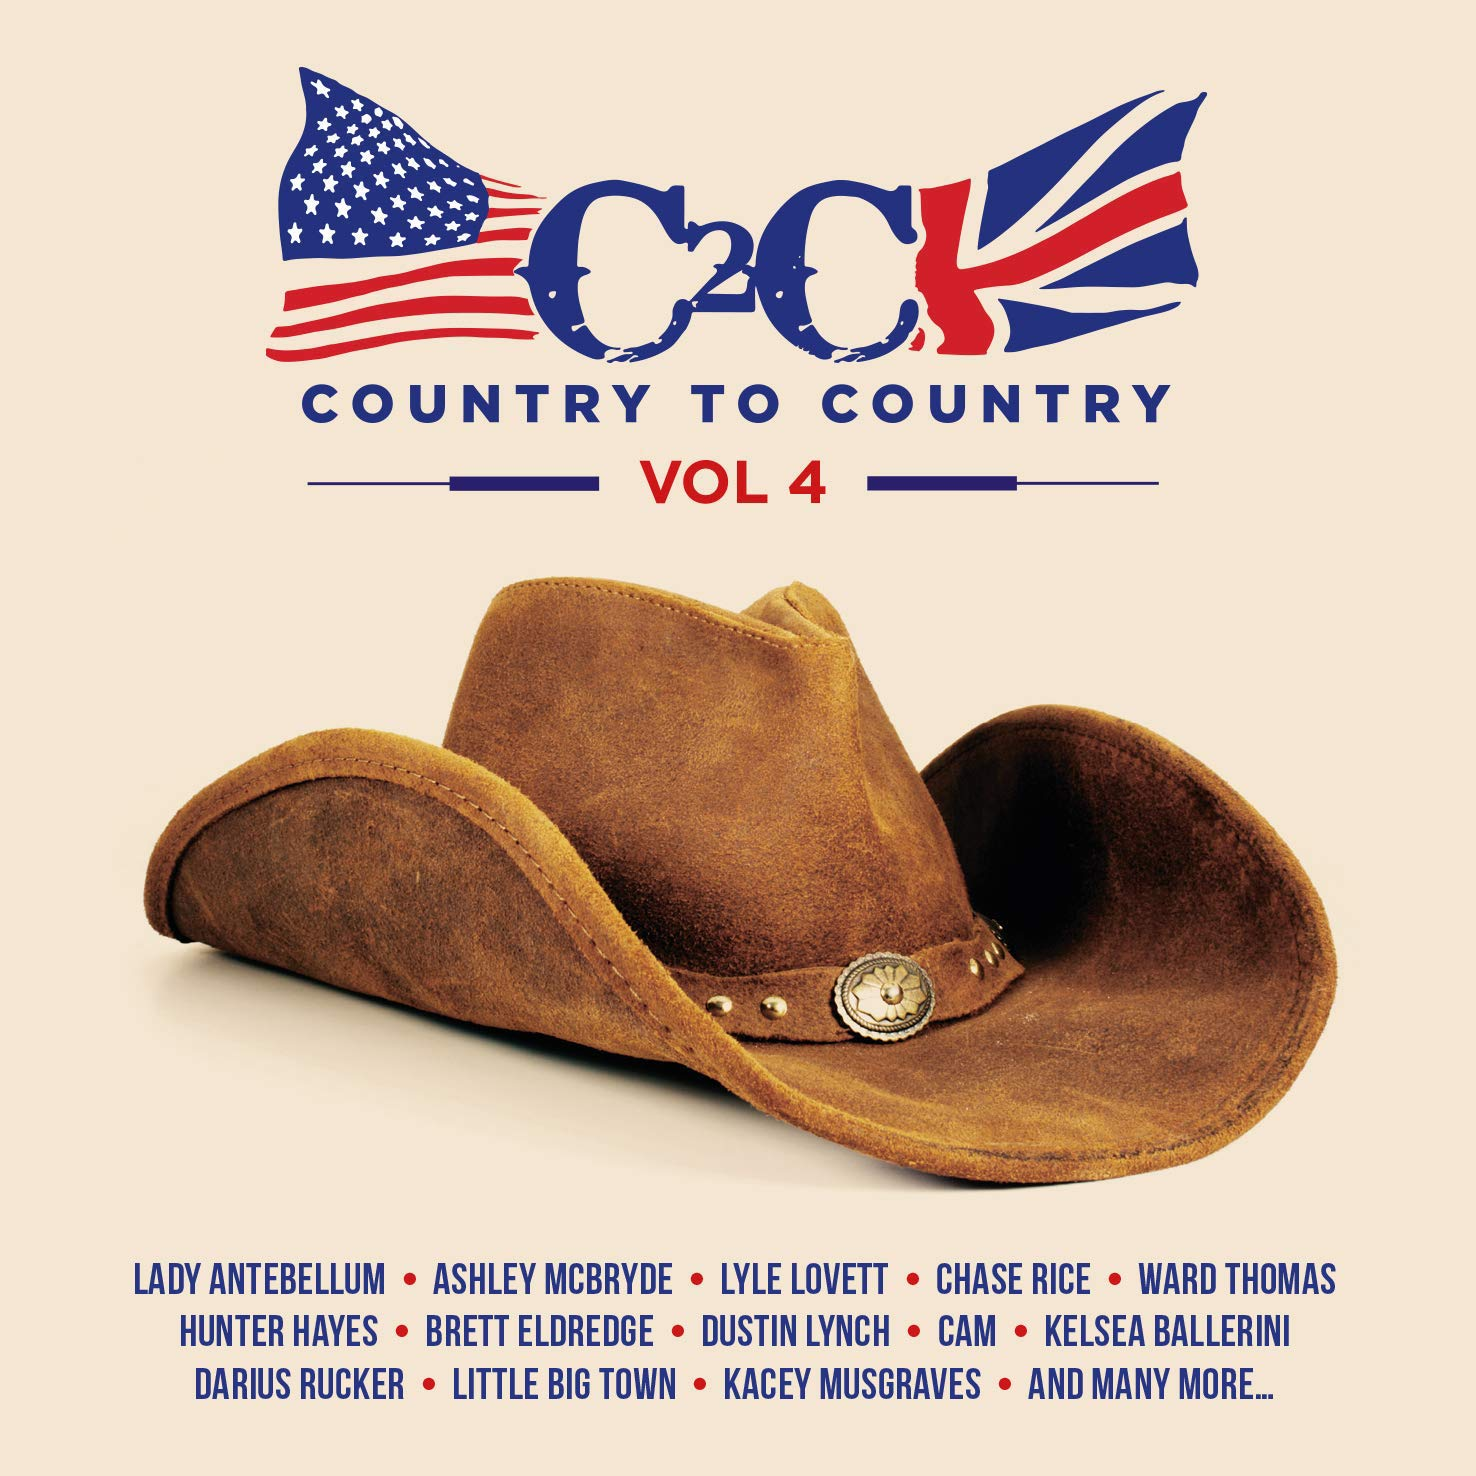 Country to country vol 4 amazon co uk music